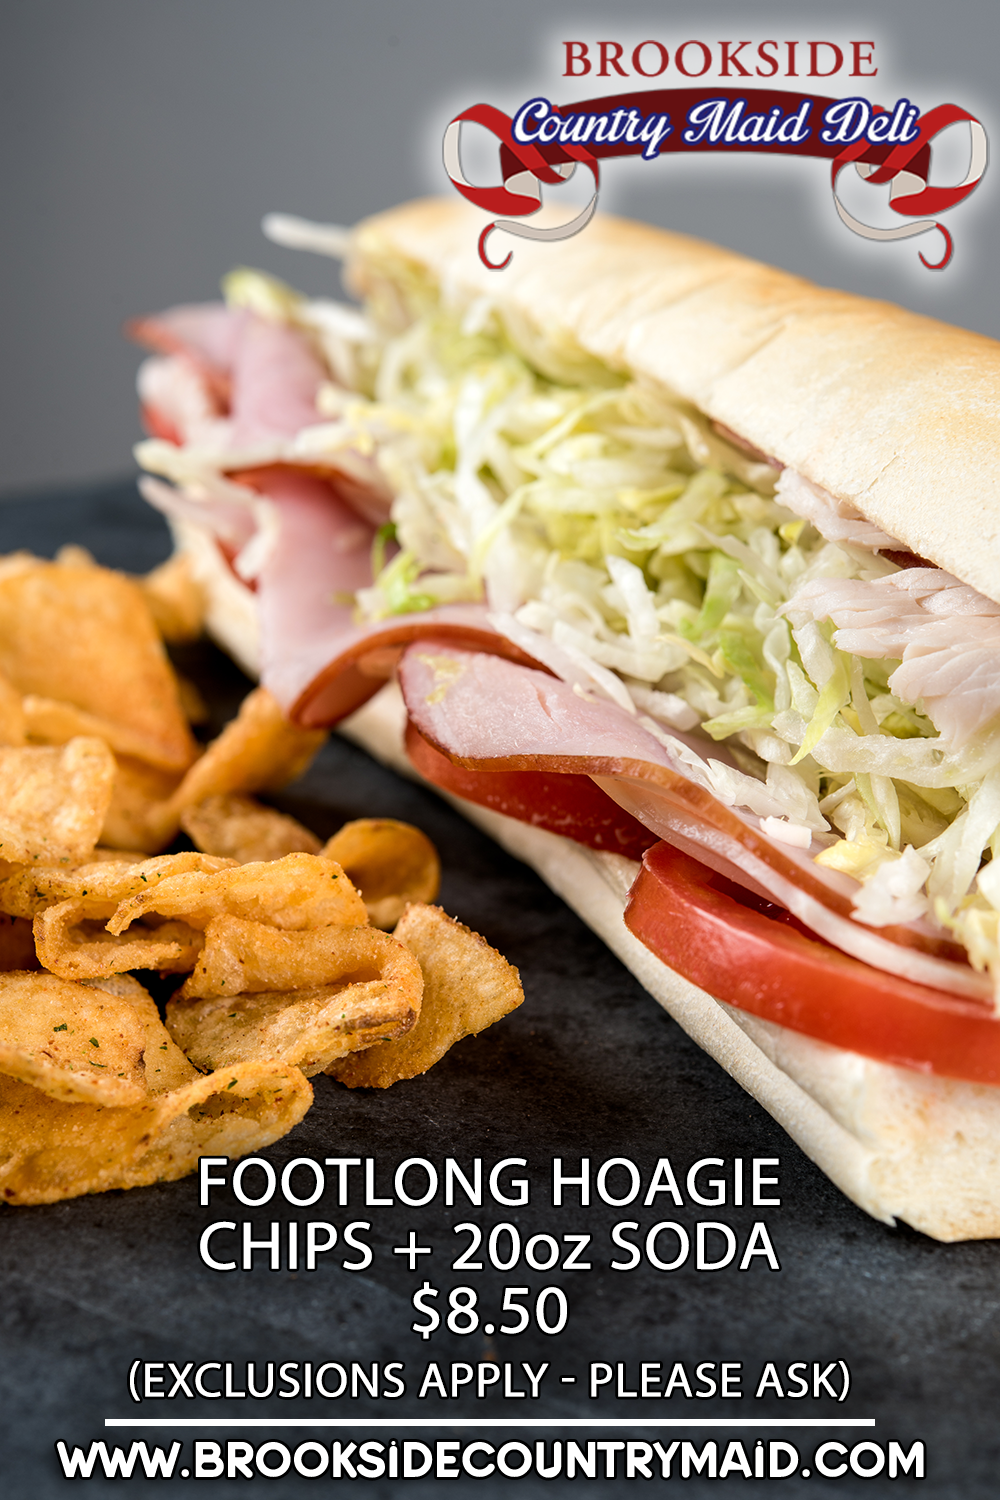 brookside country maid deli. Footlong hoagie, chips and 20 ounce soda for $8.50 (exclusions apply - please ask). www.brooksidecountrymaid.com